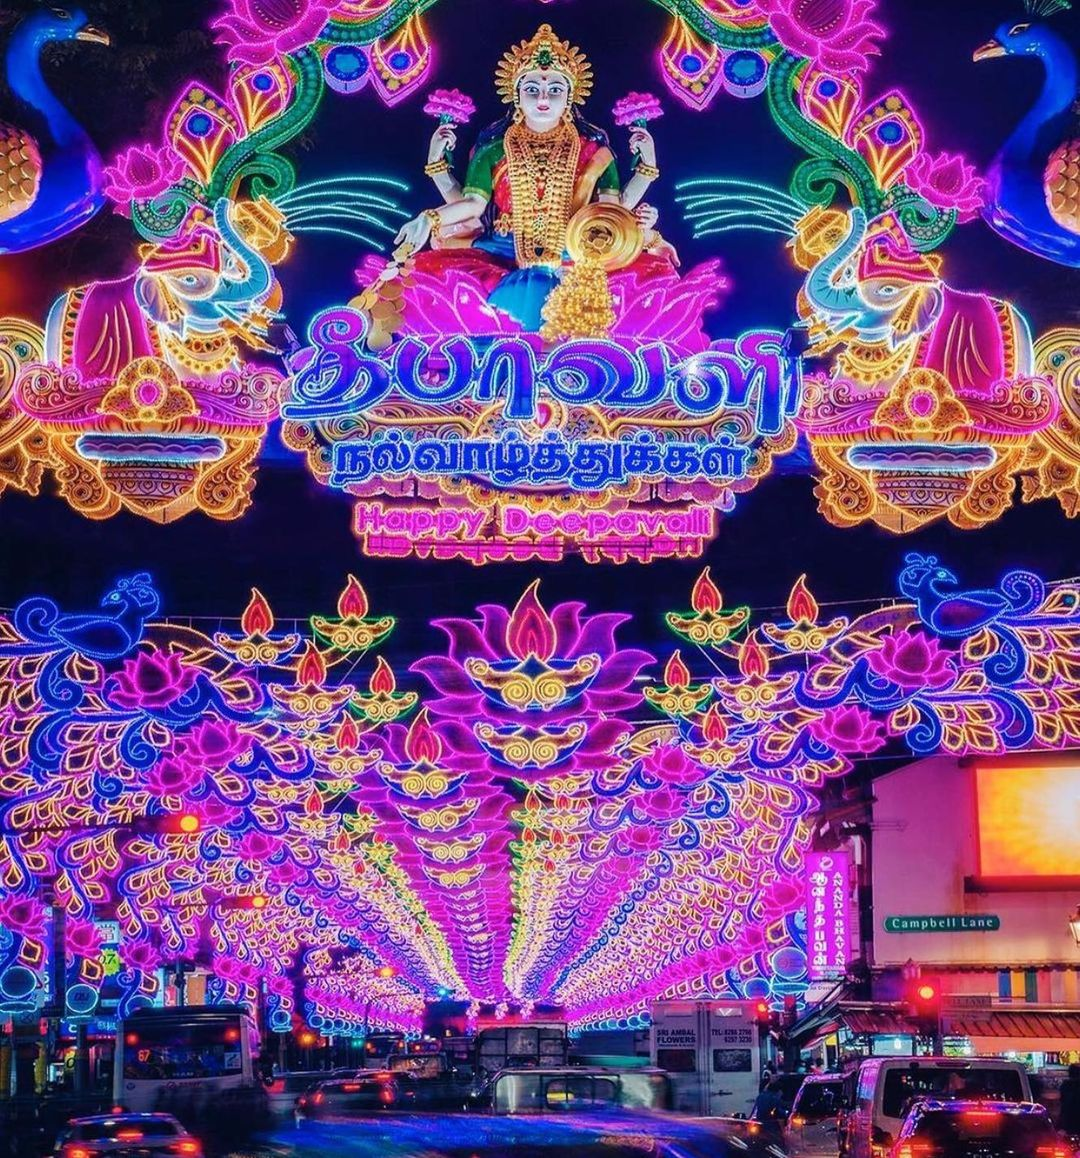 Deepavali Events Singapore 2020 - Little india light up